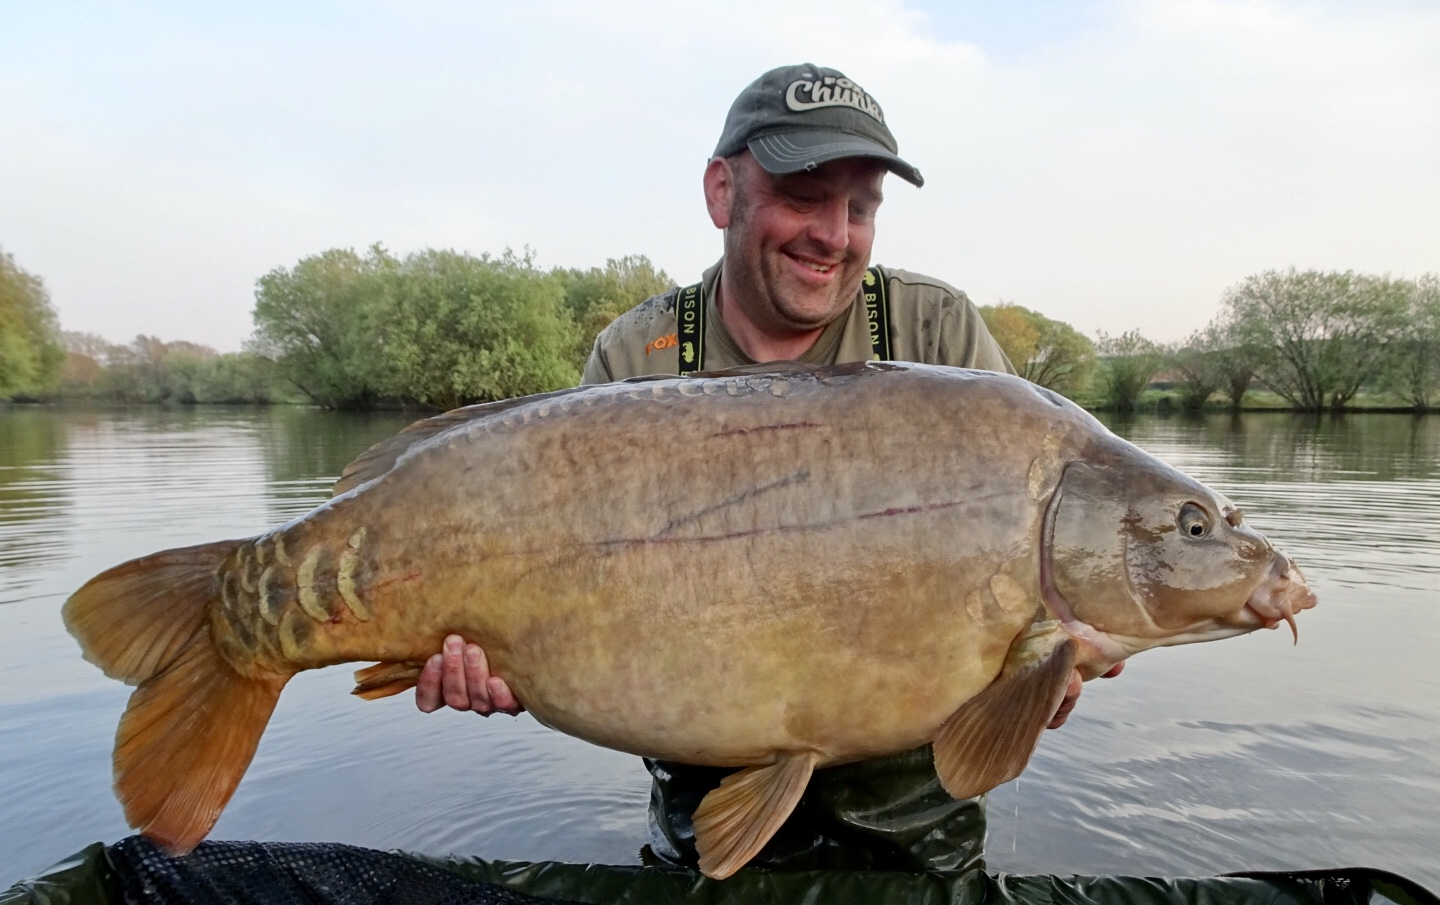 This 53-pounder was caught old-school style!